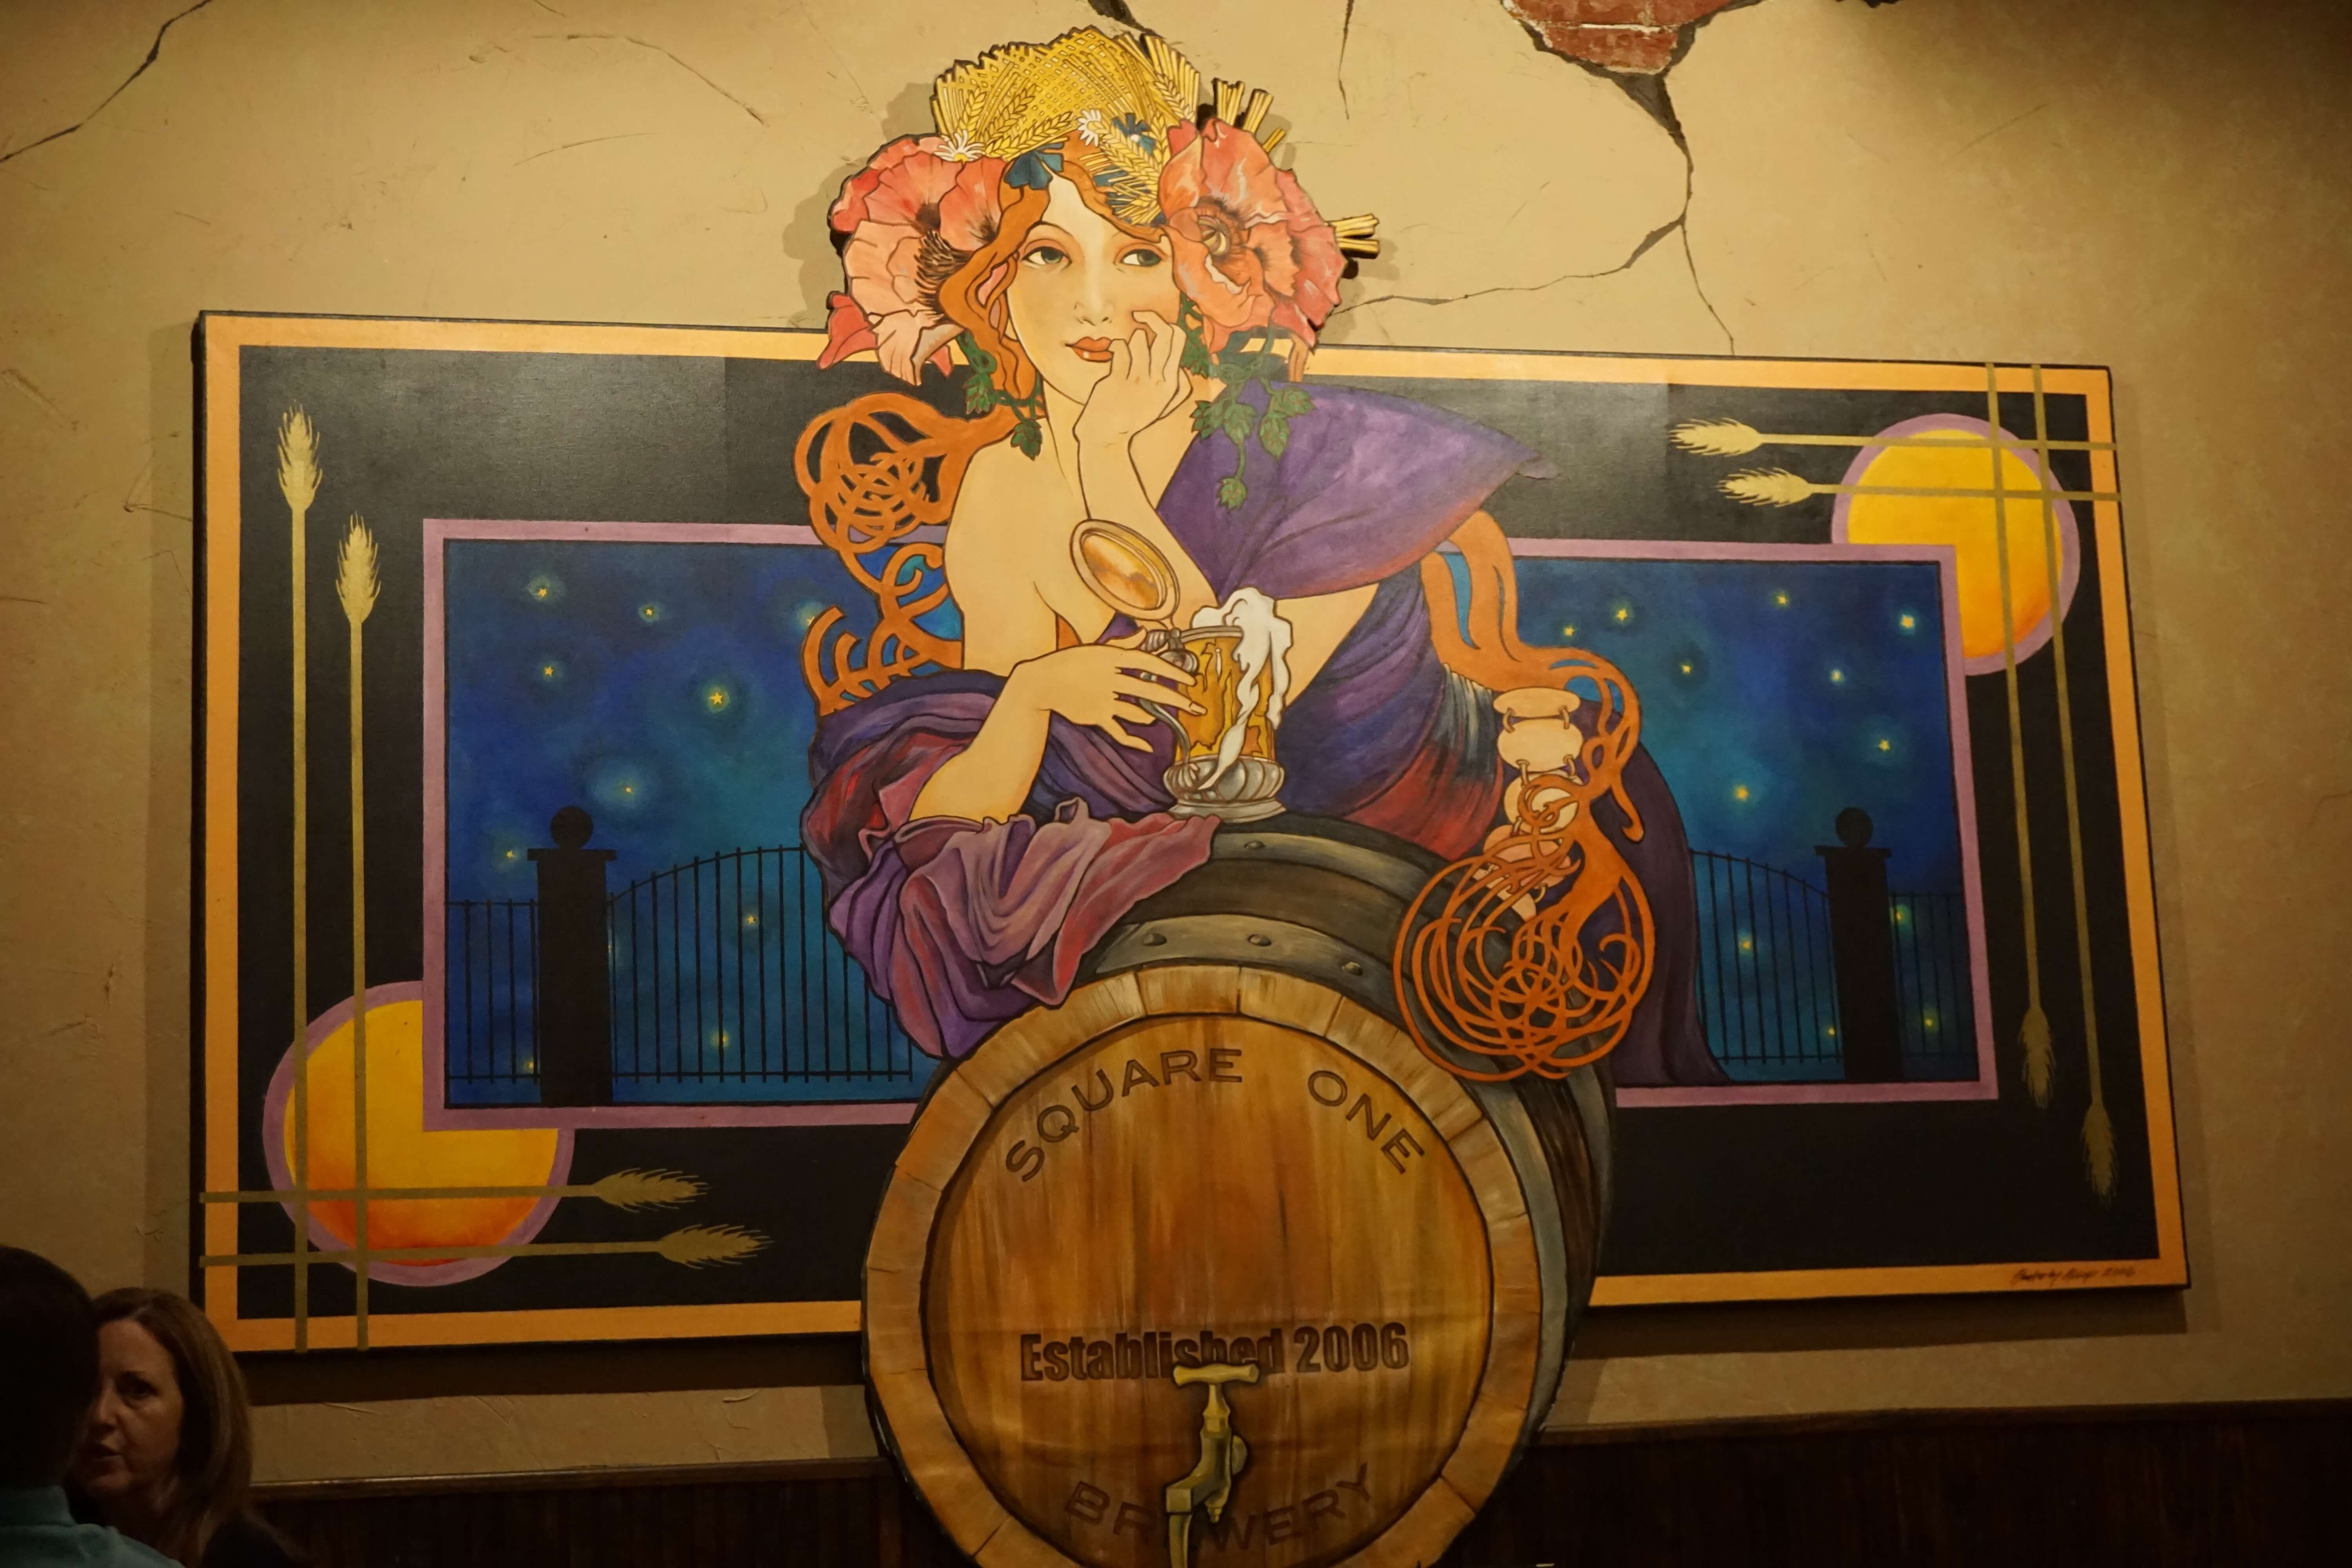 Mural on the wall of square one brewery